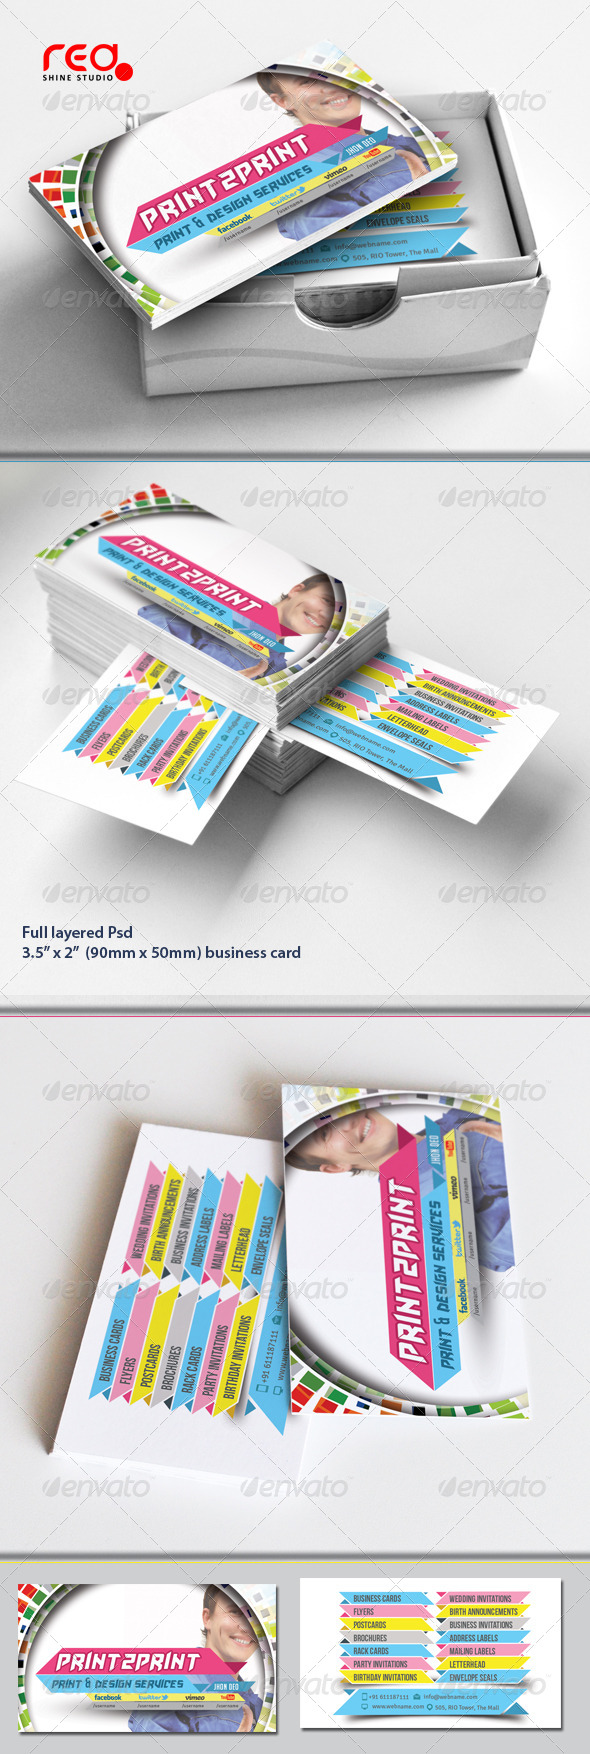 Print Press Business Card Set - Industry Specific Business Cards